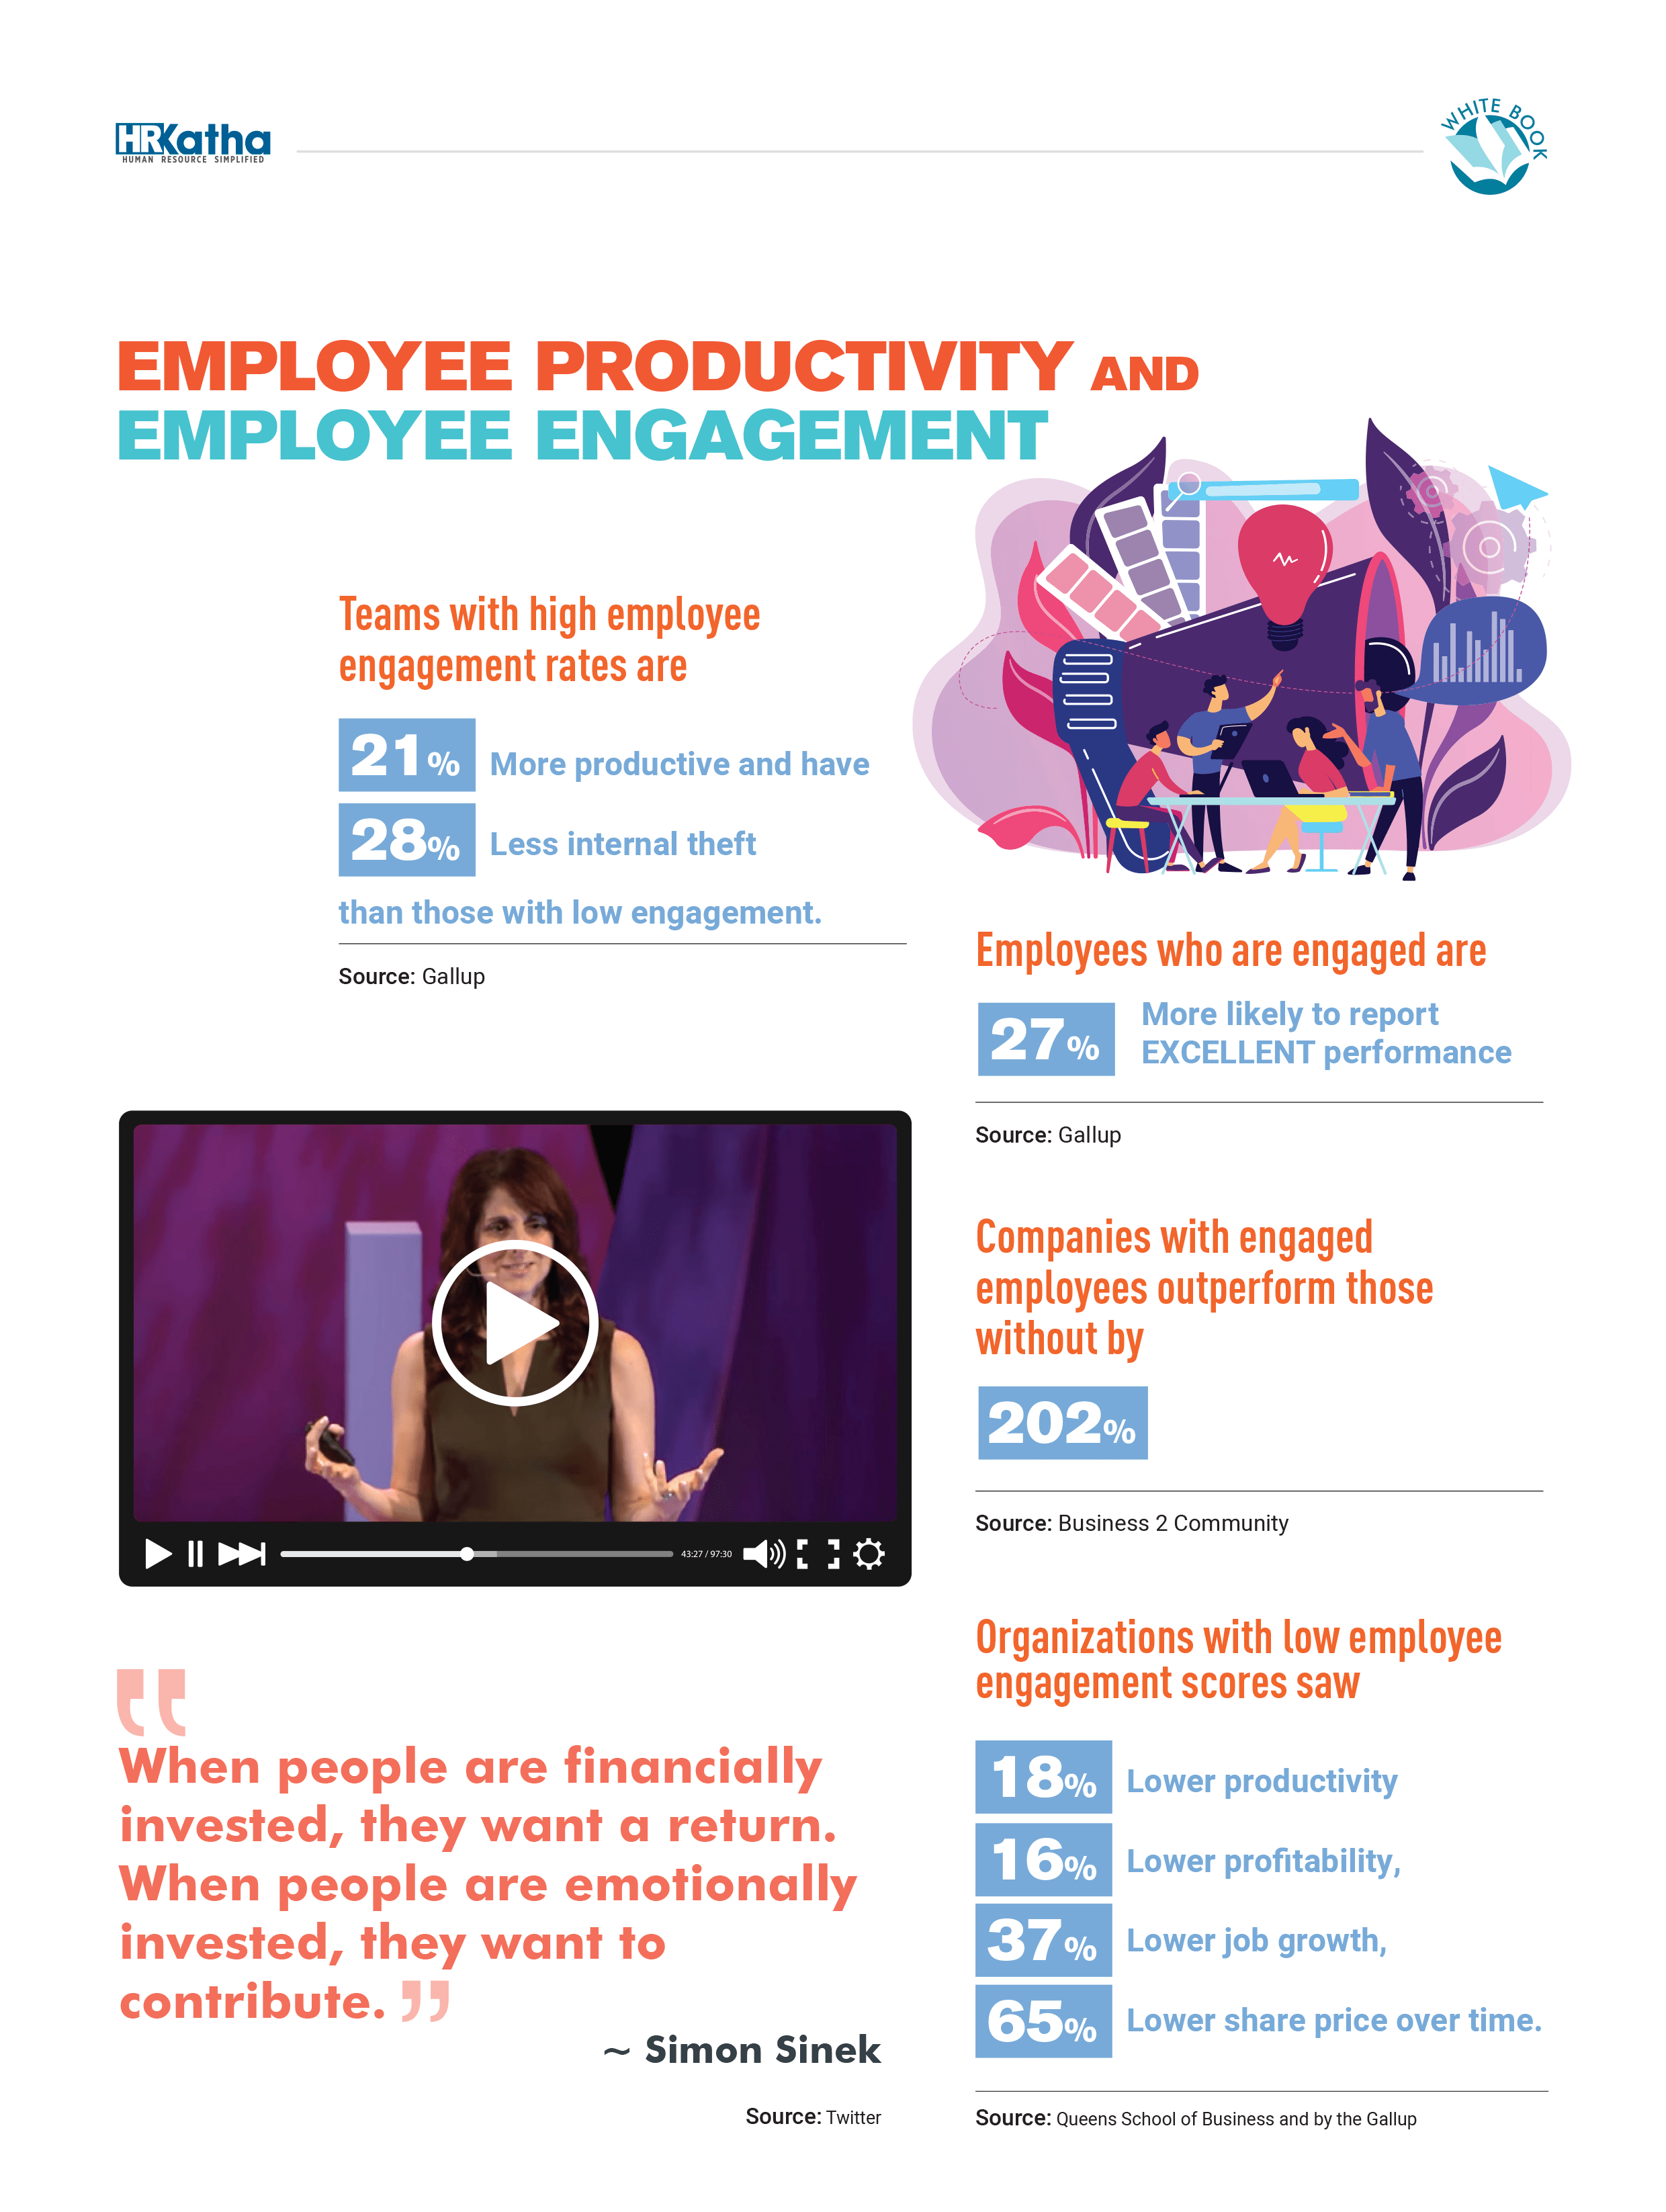 Employee productivity and employee engagement are related as seen in the report by HR Katha powered by Vantage Circle